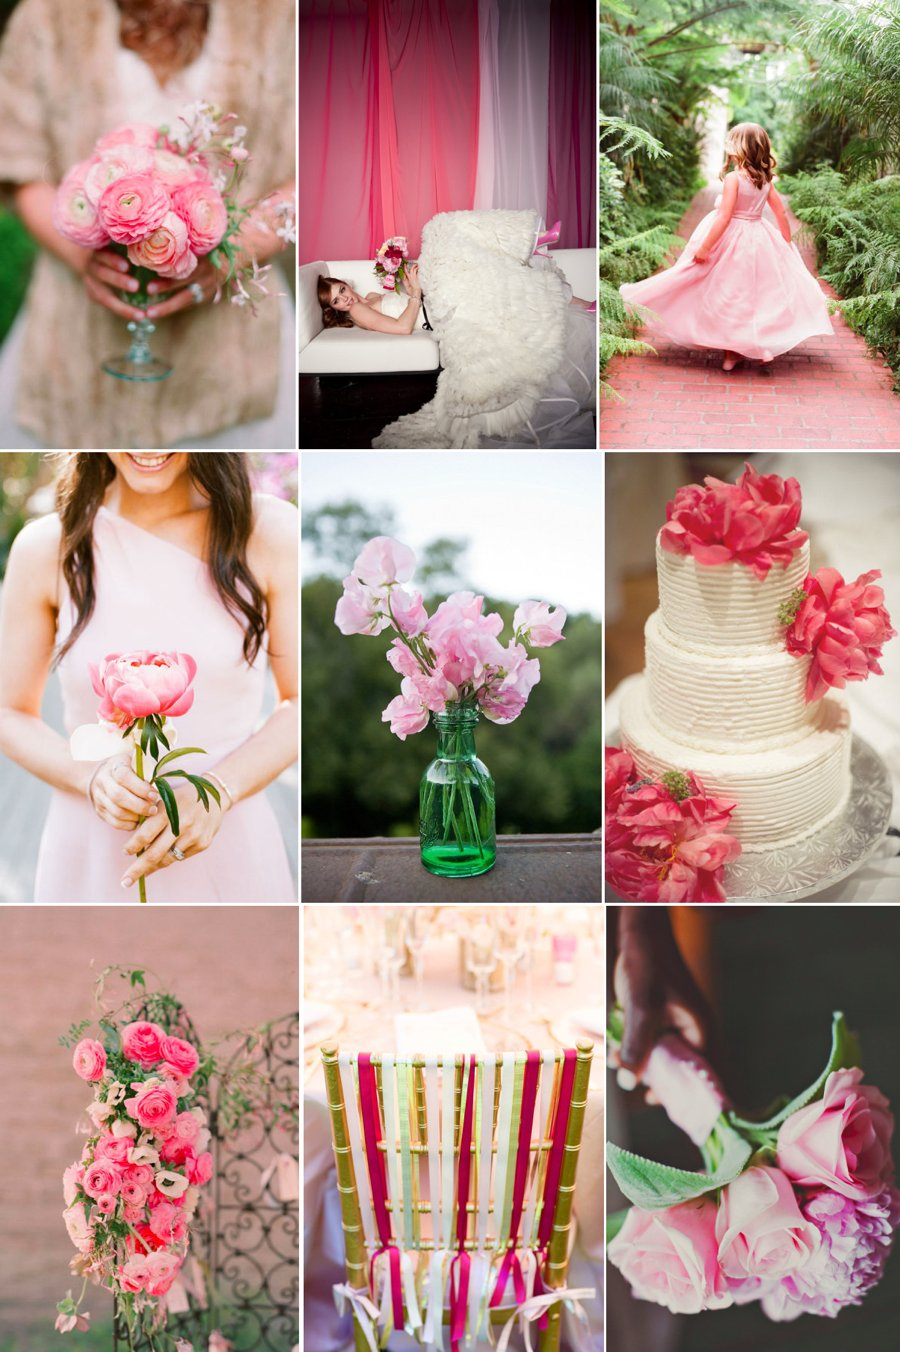 Weddings-by-color-bridal-style-inspiration-pink-green-peonies.full